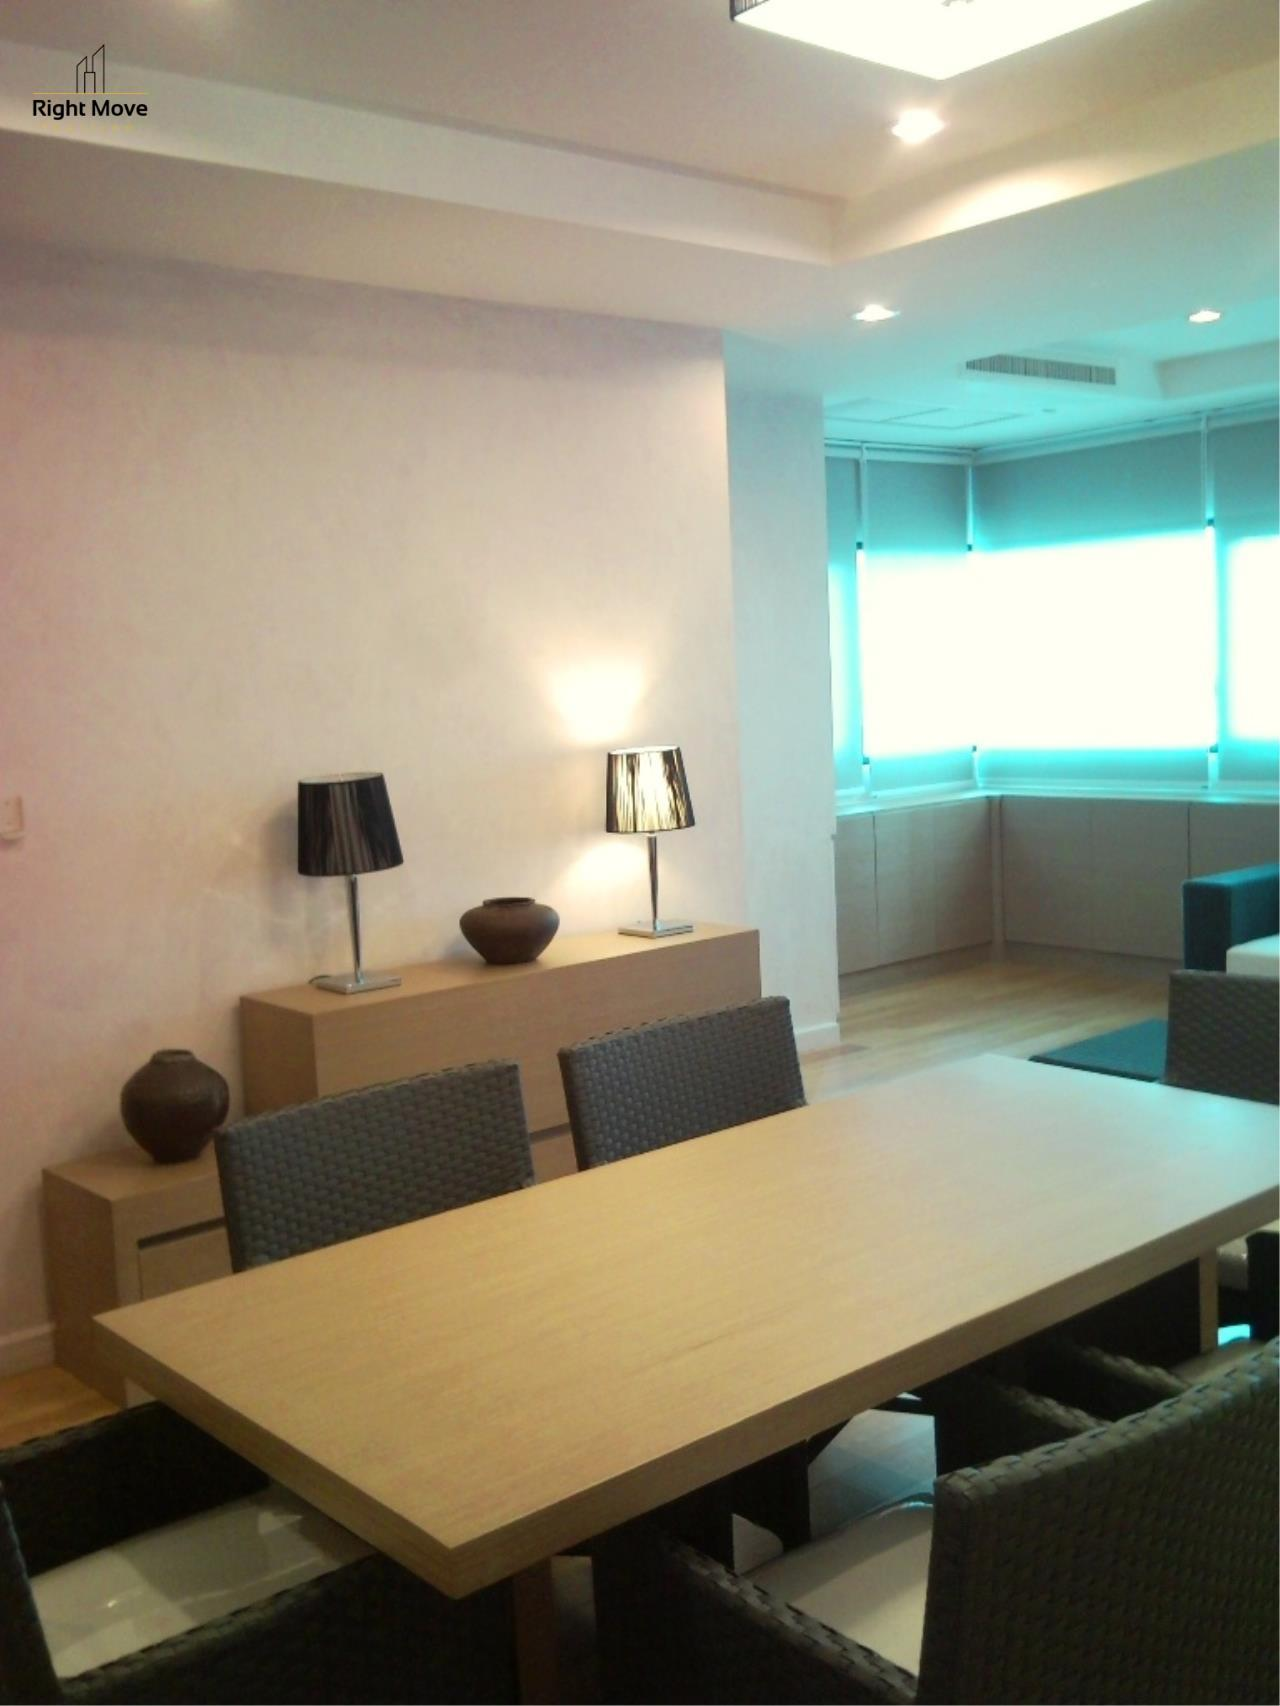 Right Move Thailand Agency's CS2423 Sathorn Garden For sale 12,000,000 THB 1 Bedroom 78.70 Sqm  2